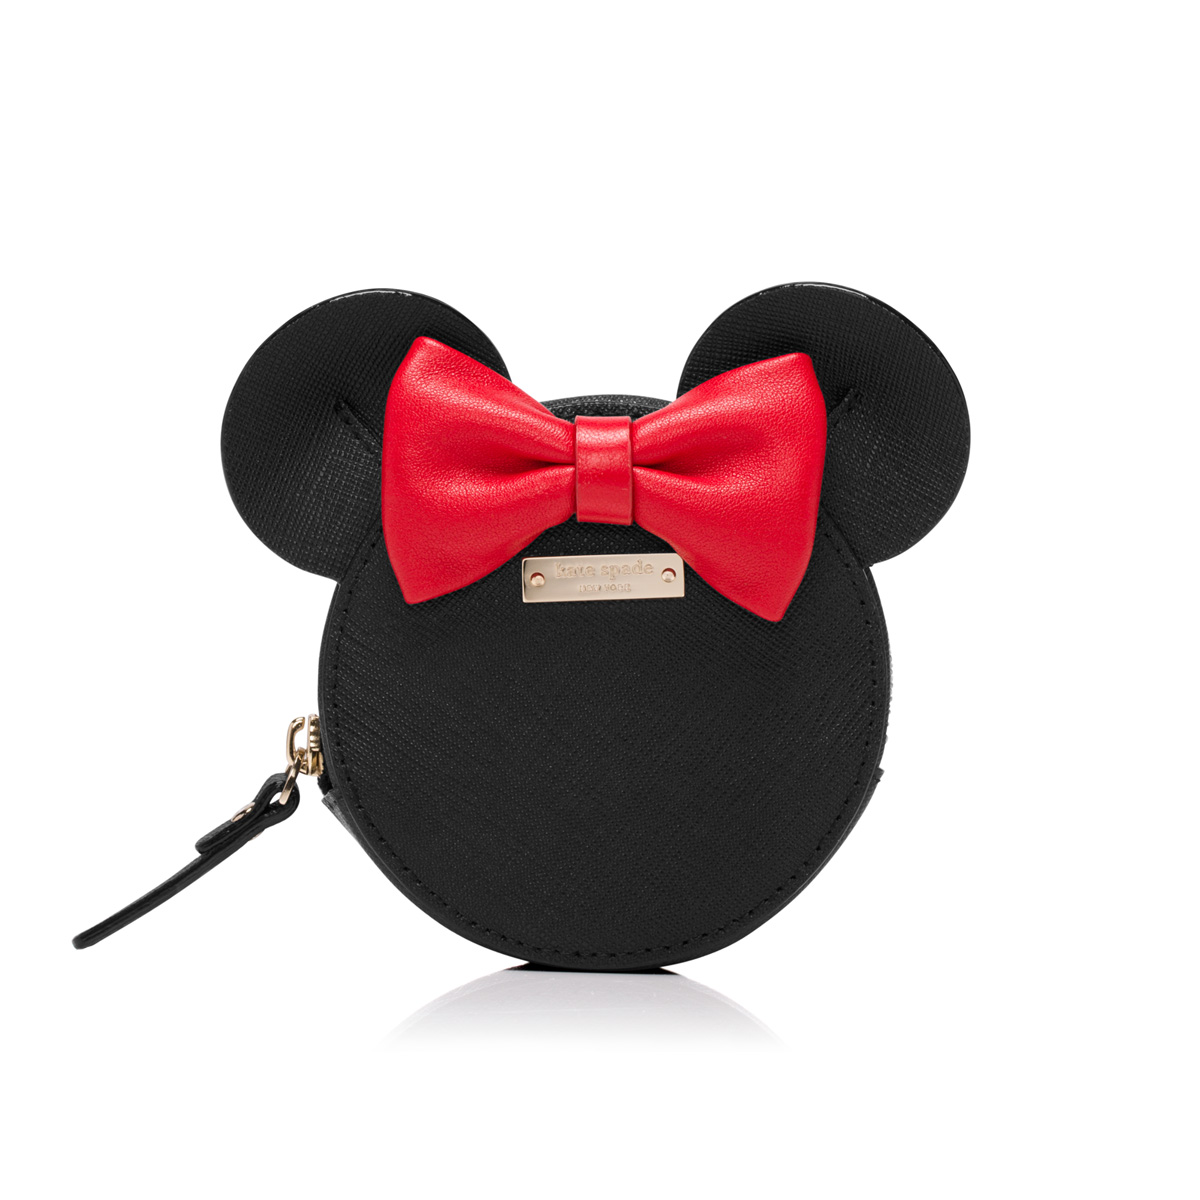 Kate Spade and Disney Just Launched the Minnie Mouse Collection of Our Dreams